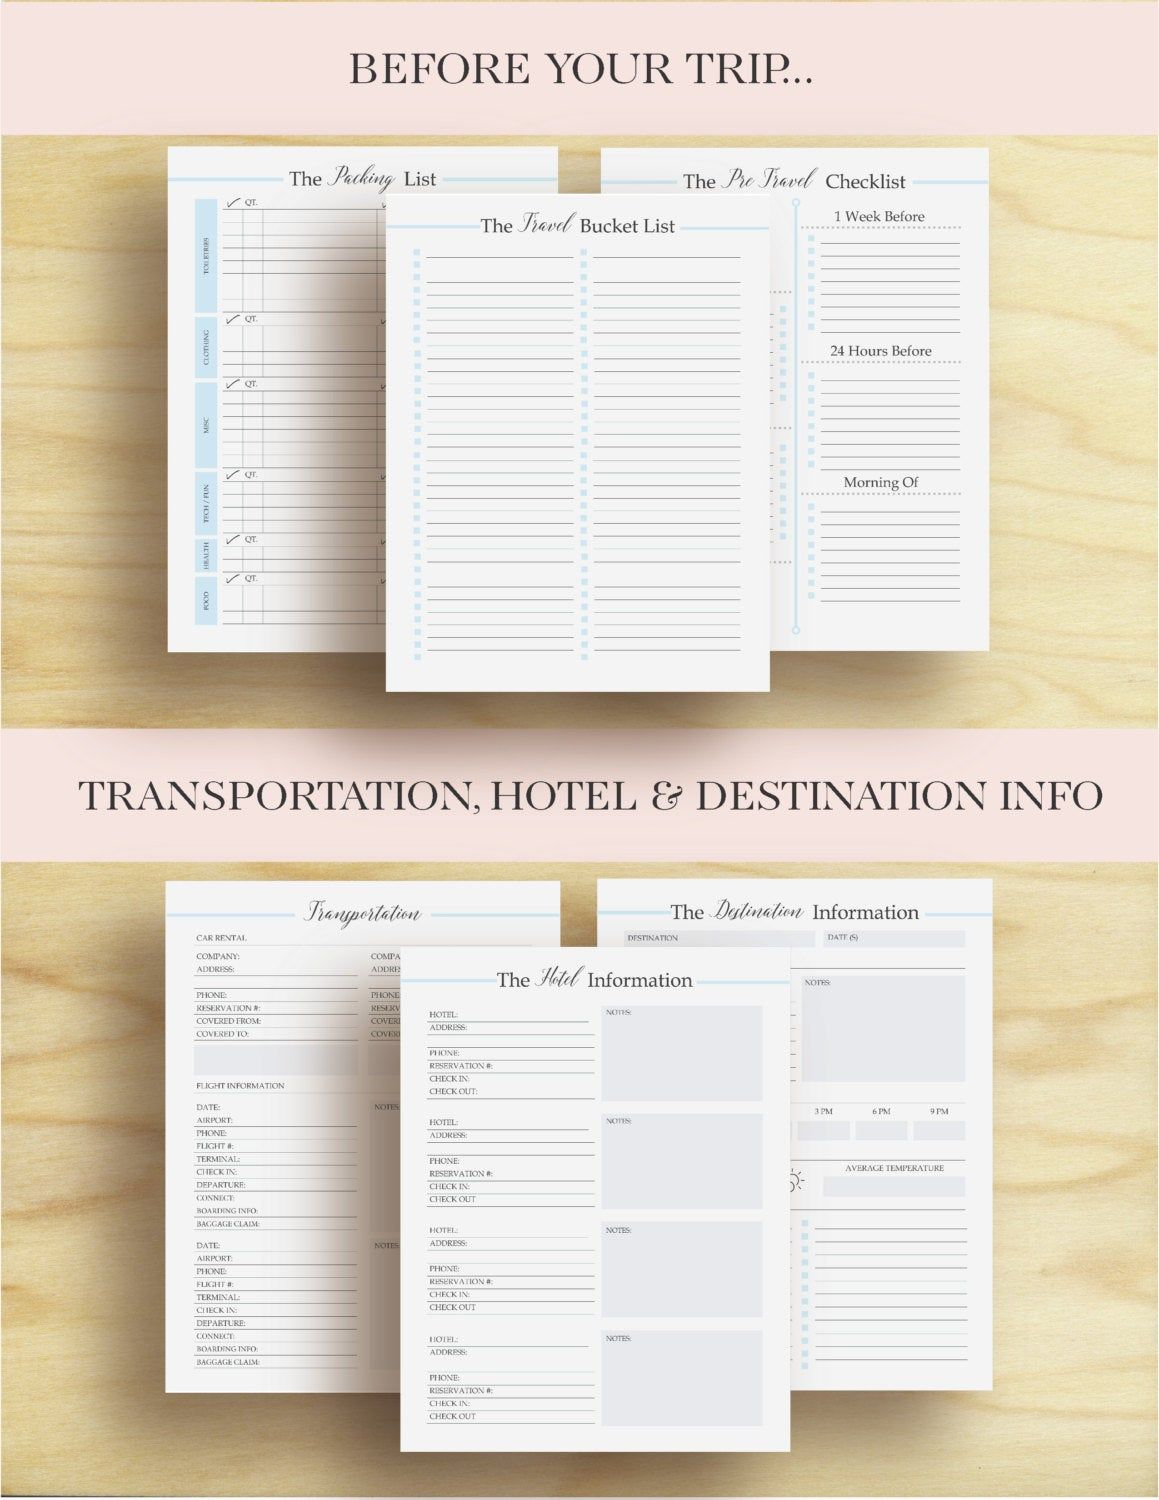 Vacation Planner Travel Planner Trip Planner Vacation